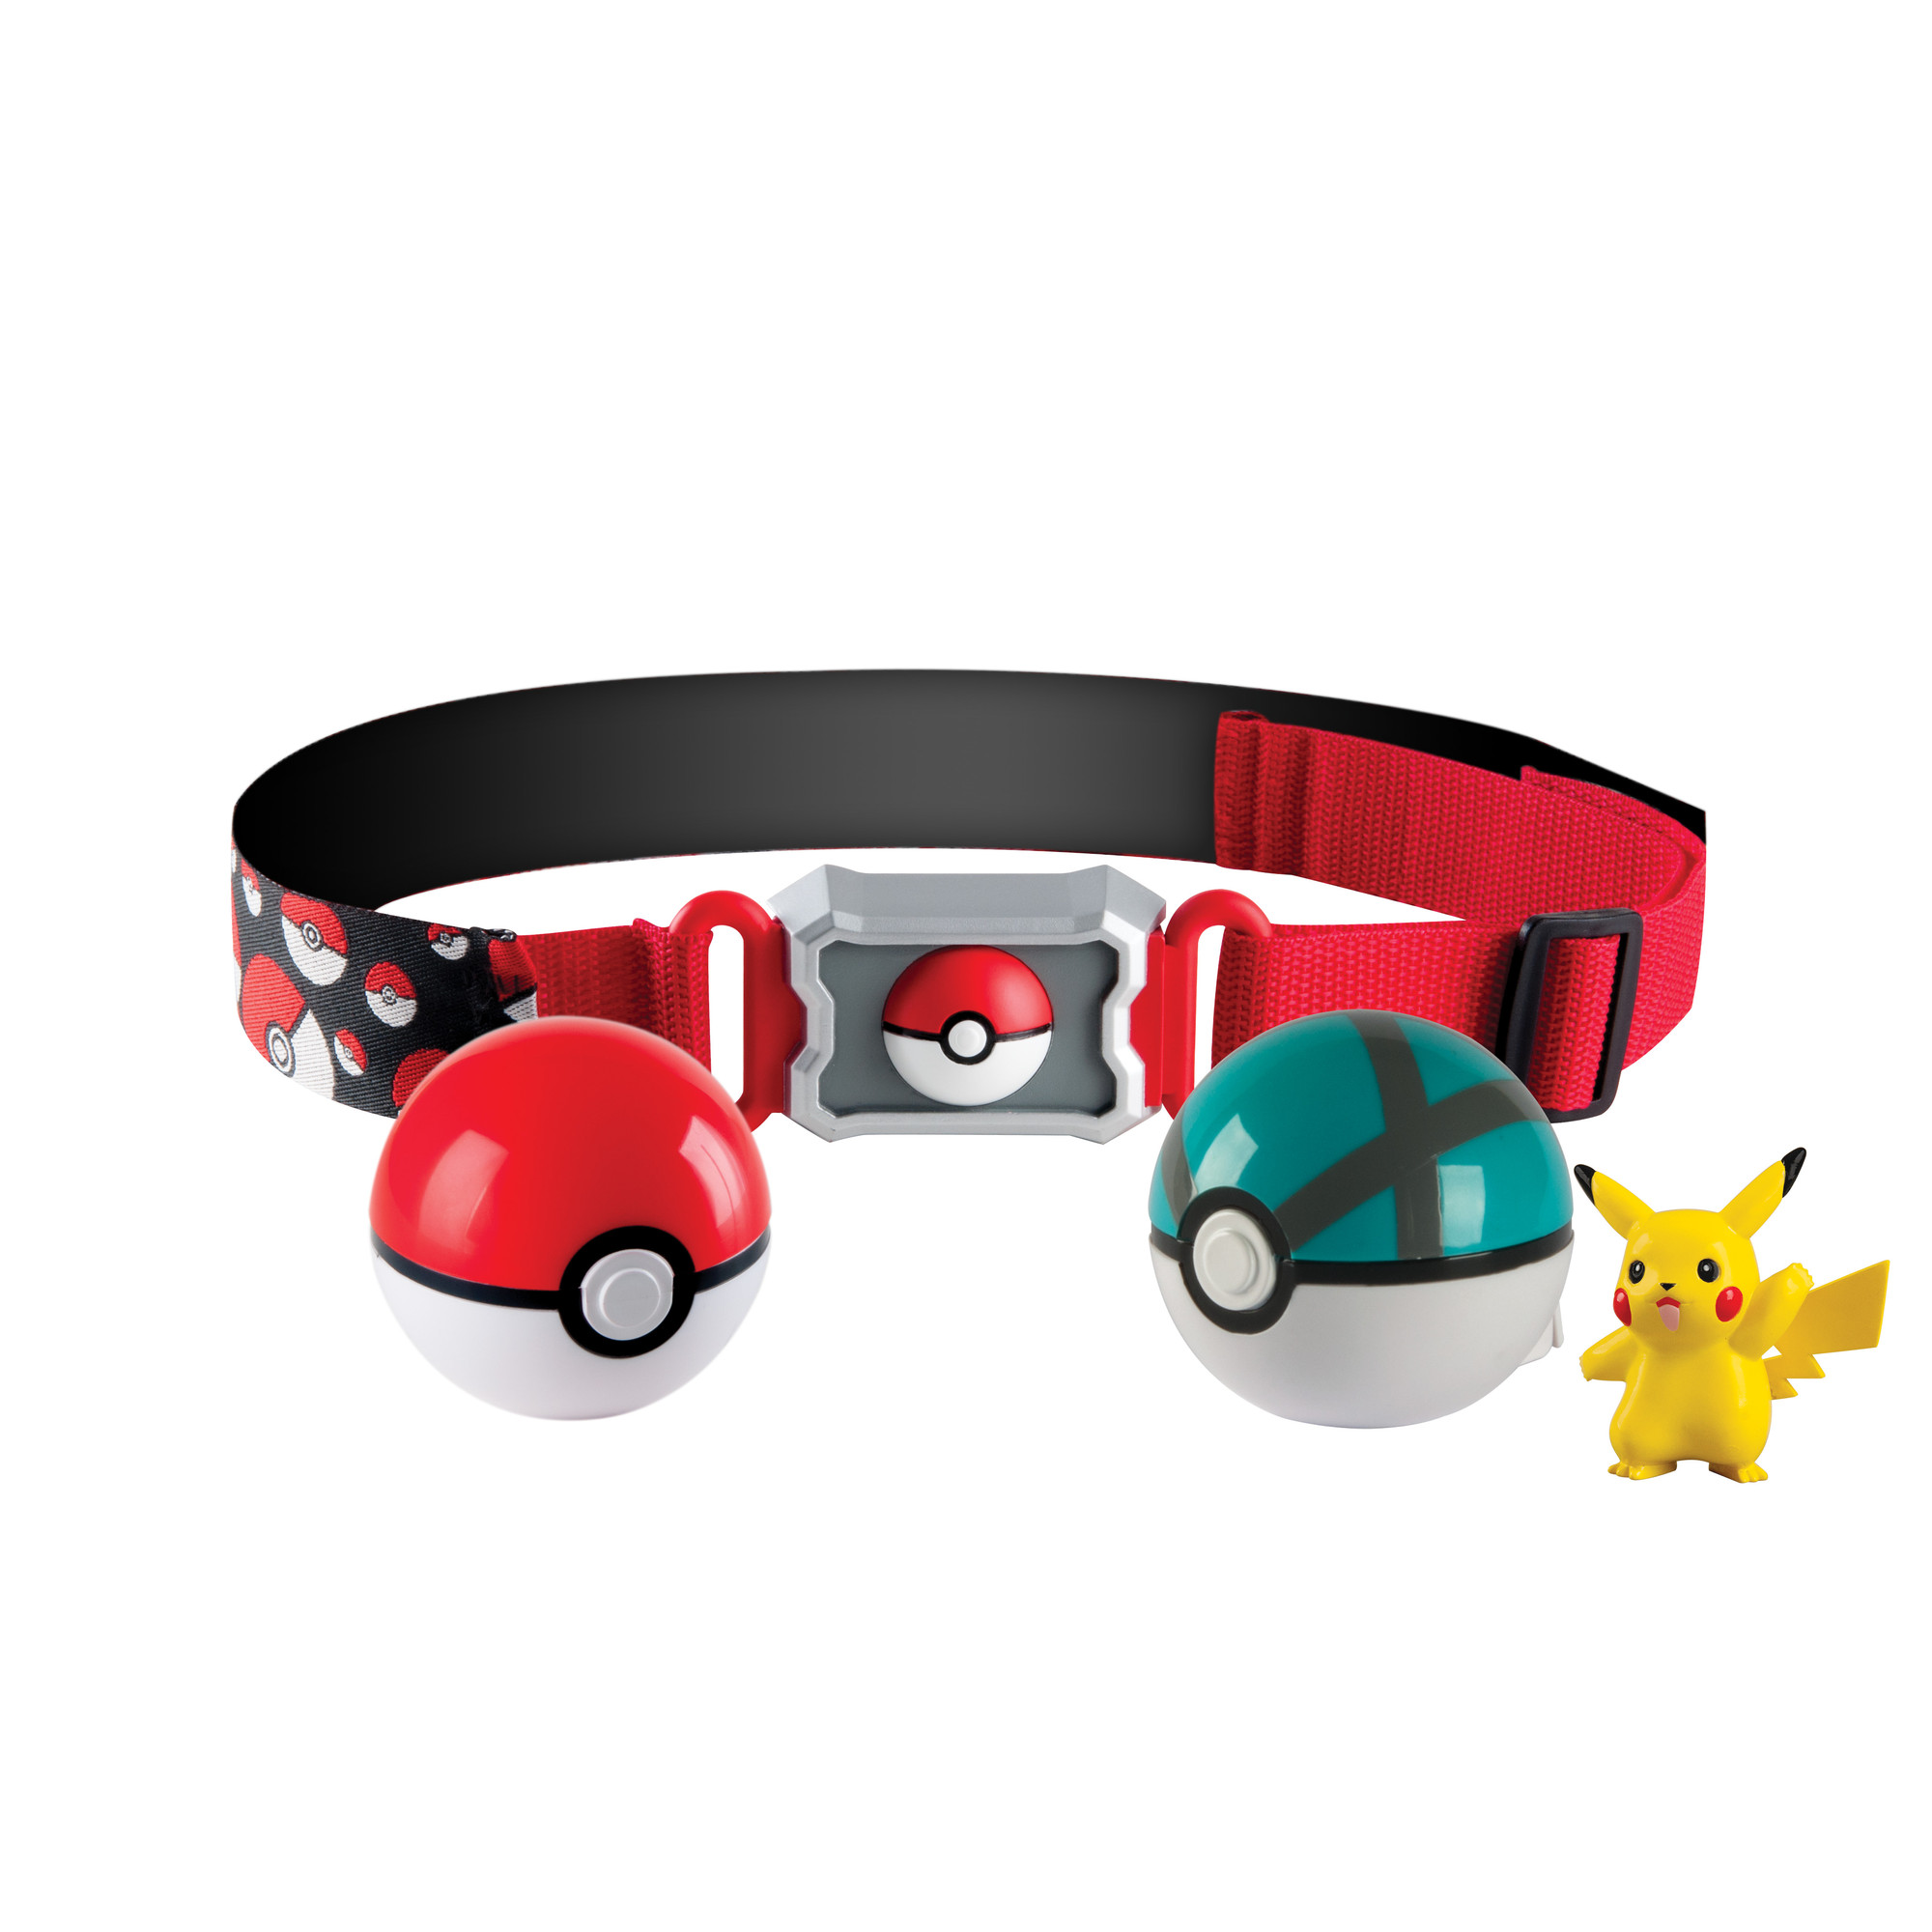 Pokemon Clip N Carry Poke Ball 2 inch Action Figure with Belt - Pikachu PartNumber: 004W009284198001P